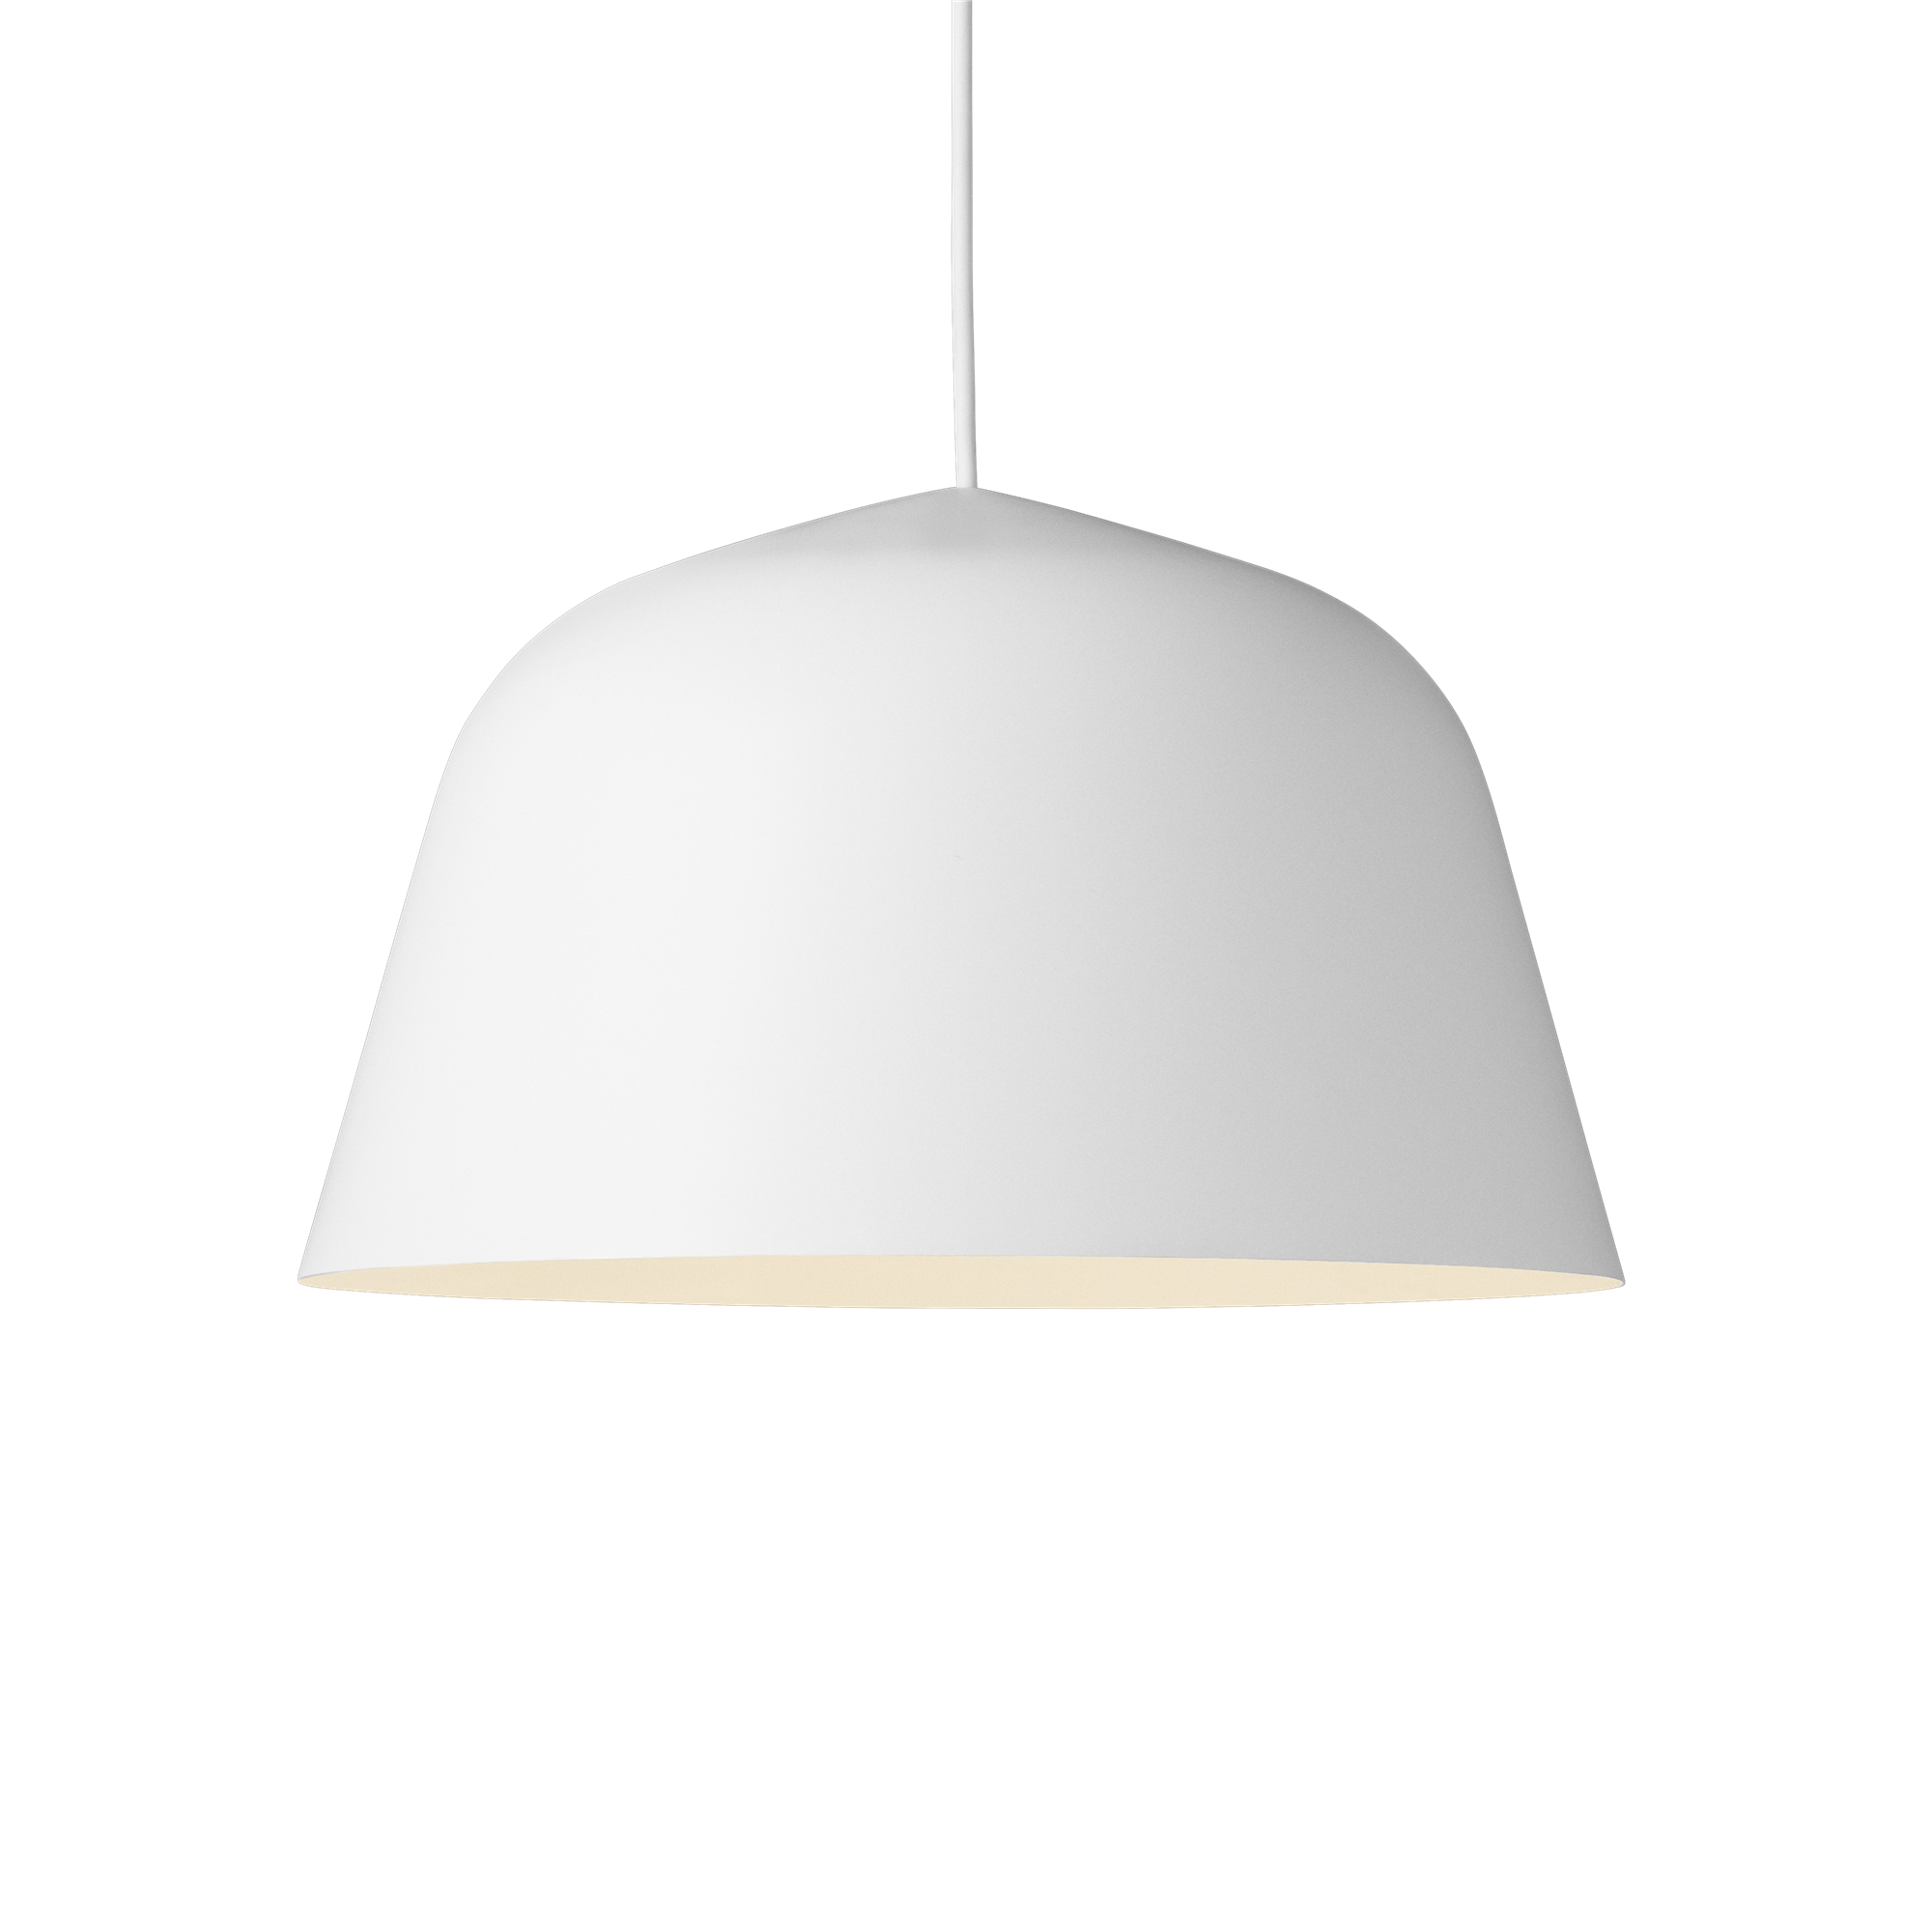 Made Of Hand Painted Aluminum The Ambit Pendant Lamp Integrates Seamlessly Into Any Room Office Or Commercial Space See The Pendant Light Pendant Lamp Lamp